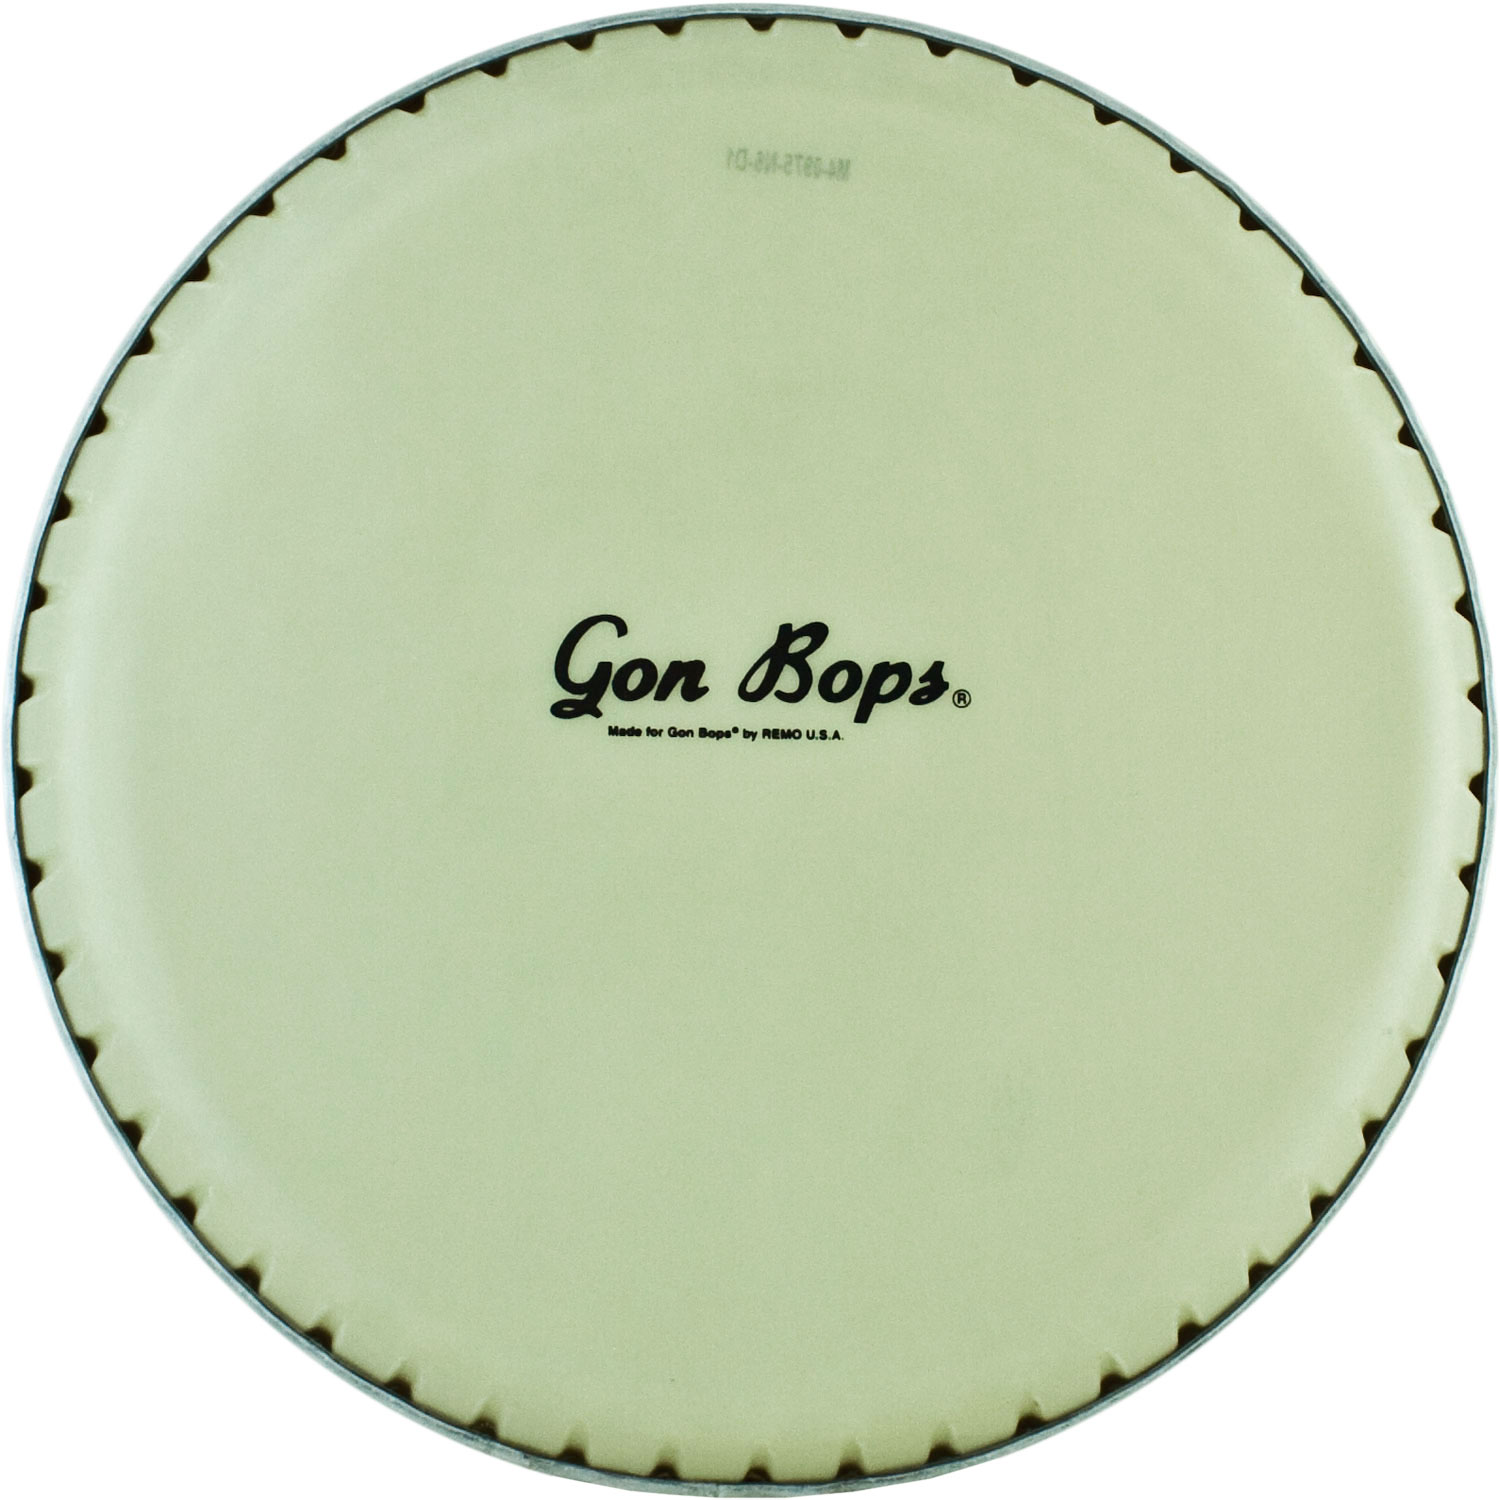 "Gon Bops 11.5"" Nuskyn Synthetic Conga Drum Head"